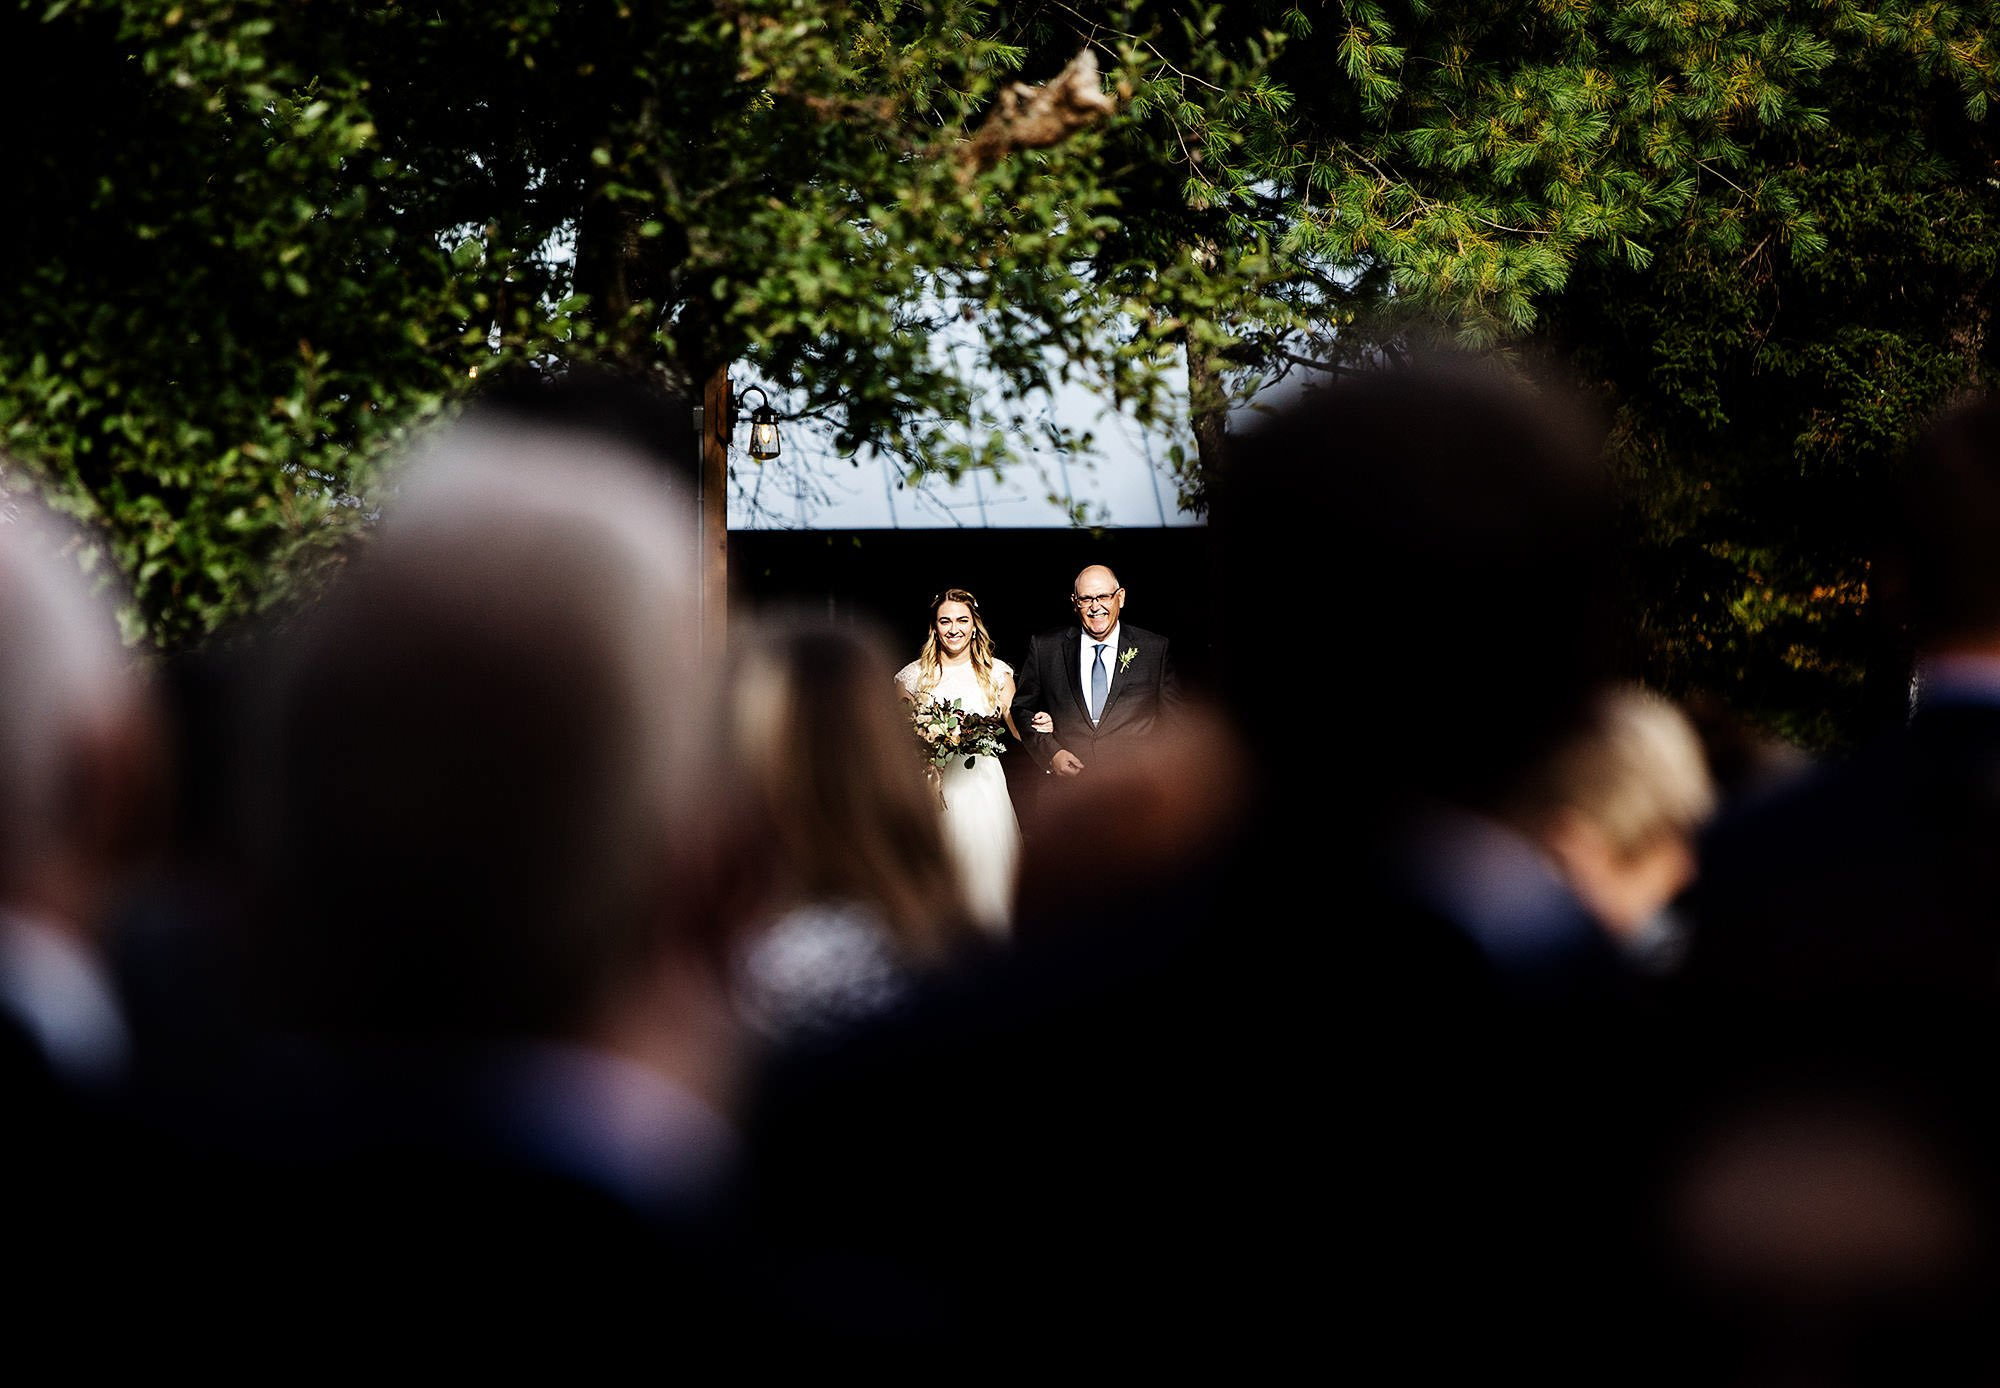 The Bride and her father process during the ceremony of their Mad River Barn Wedding.